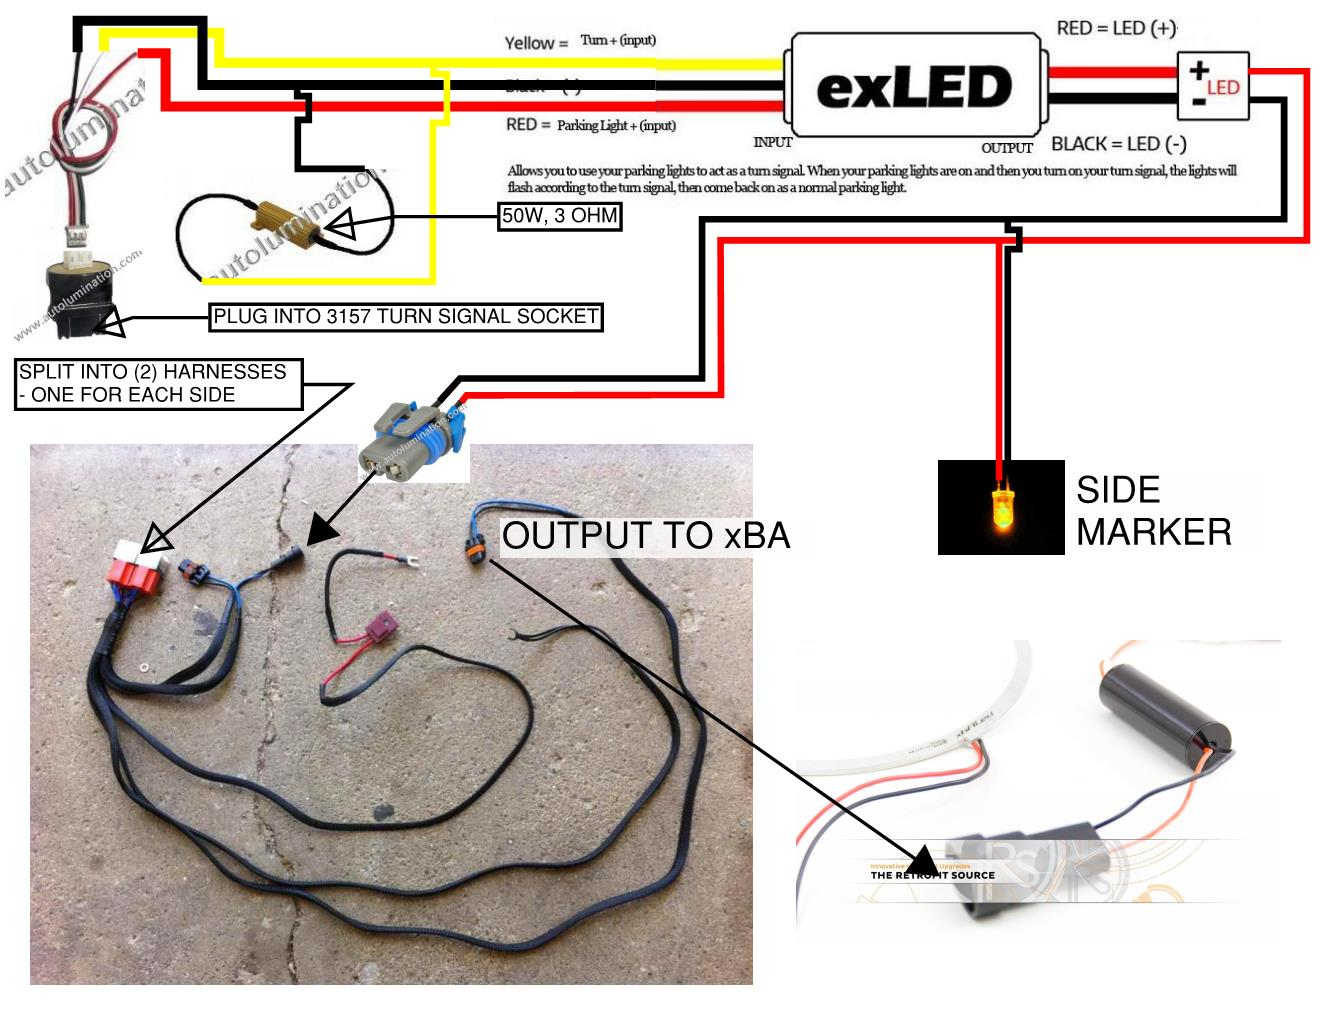 Led Turn Signal Wiring Diagram Smart Diagrams Atv Causes All Lights To Flash Hidplanet The Rh Com Motorcycle